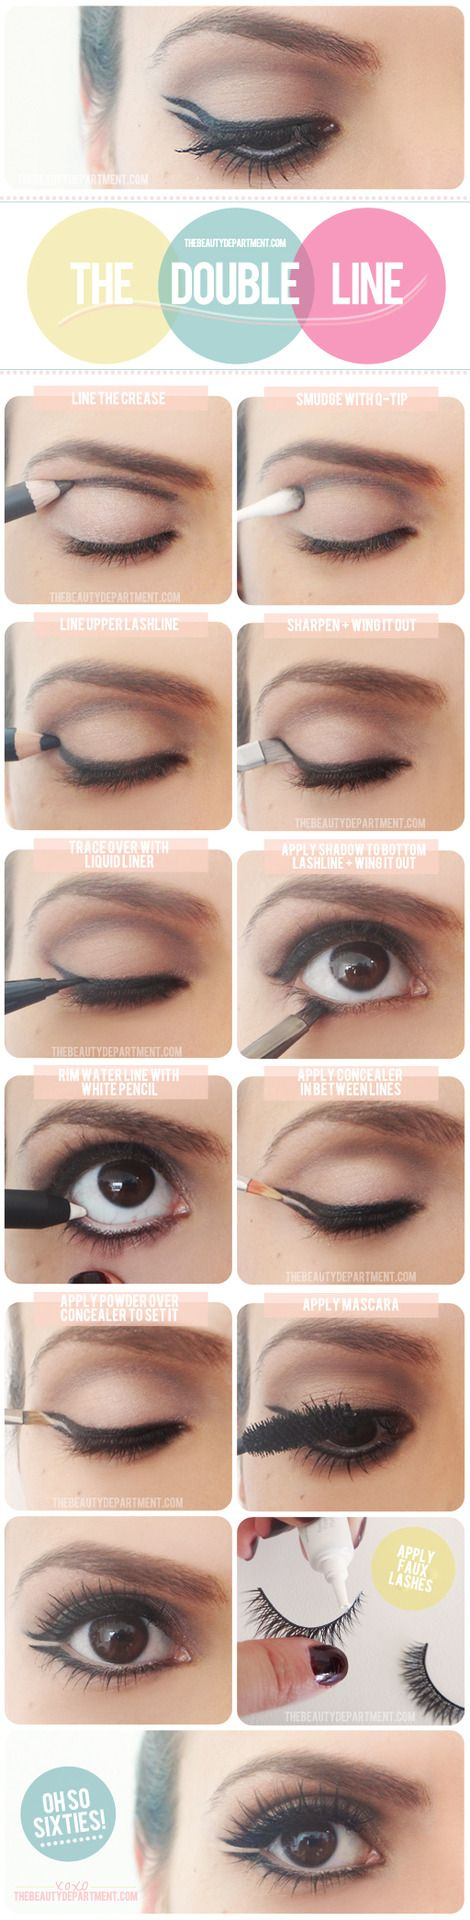 the double line - eyeliner